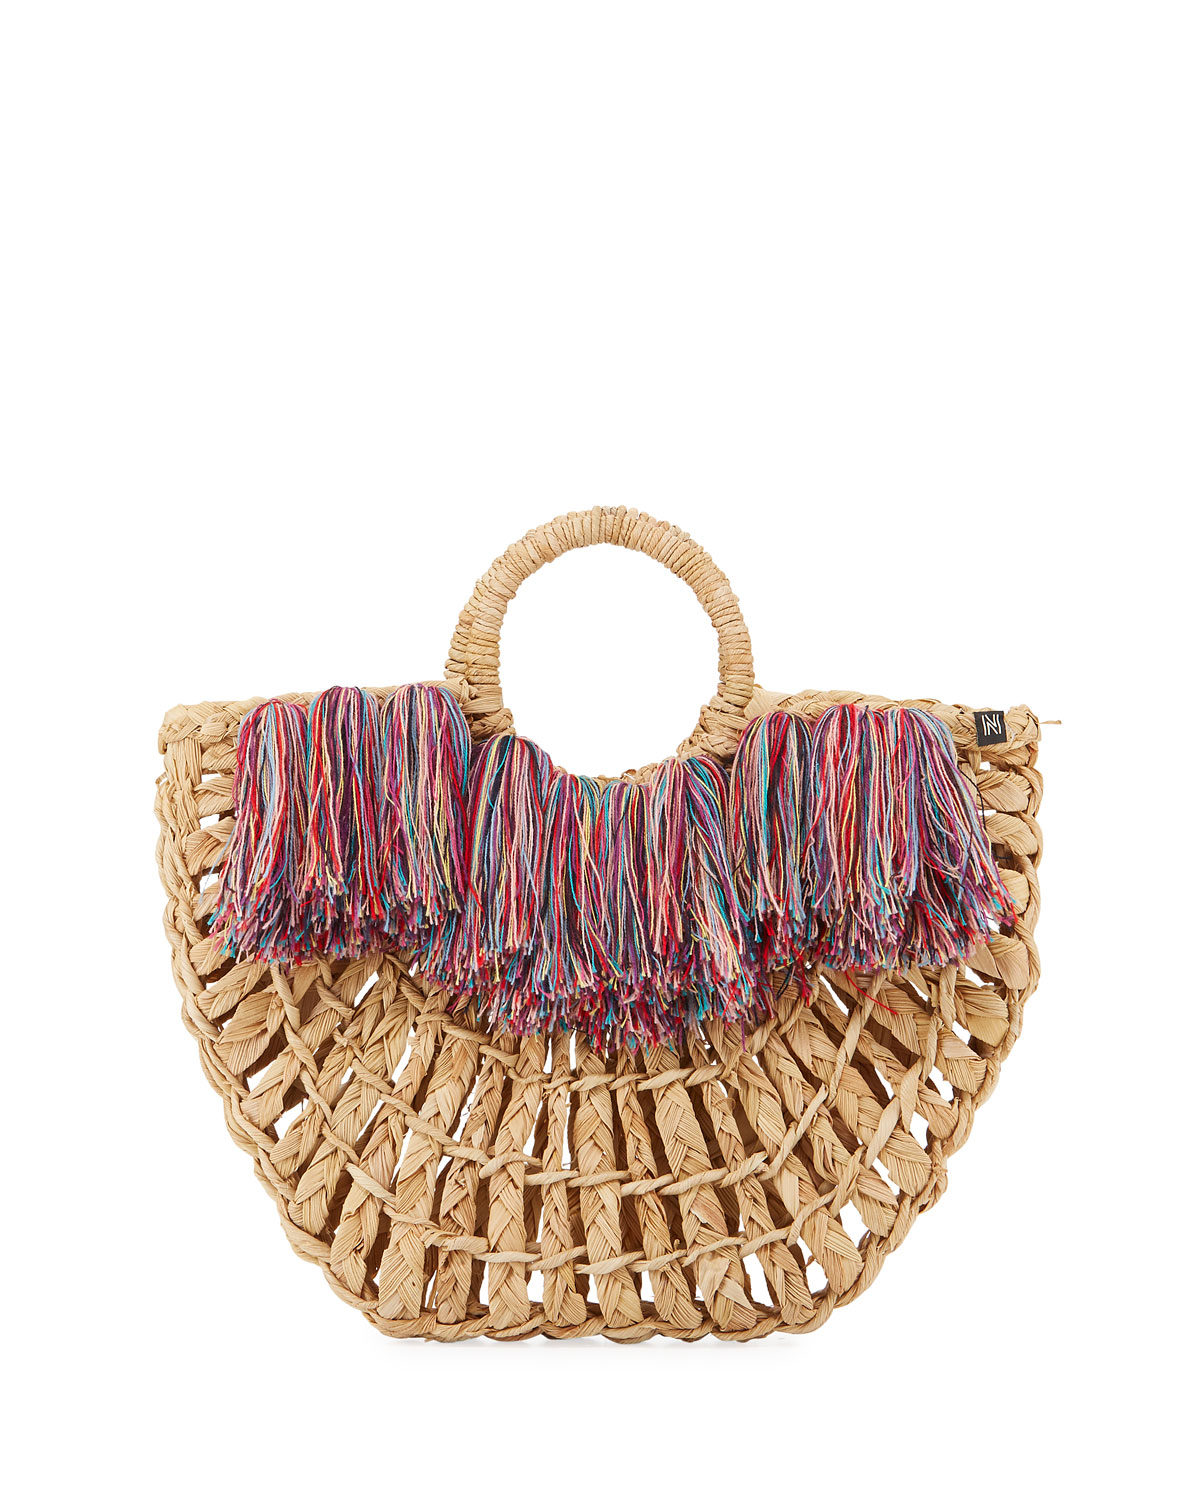 NANNACAY - COTIO Maria Leque Fringe Large Tote Bag in Off White